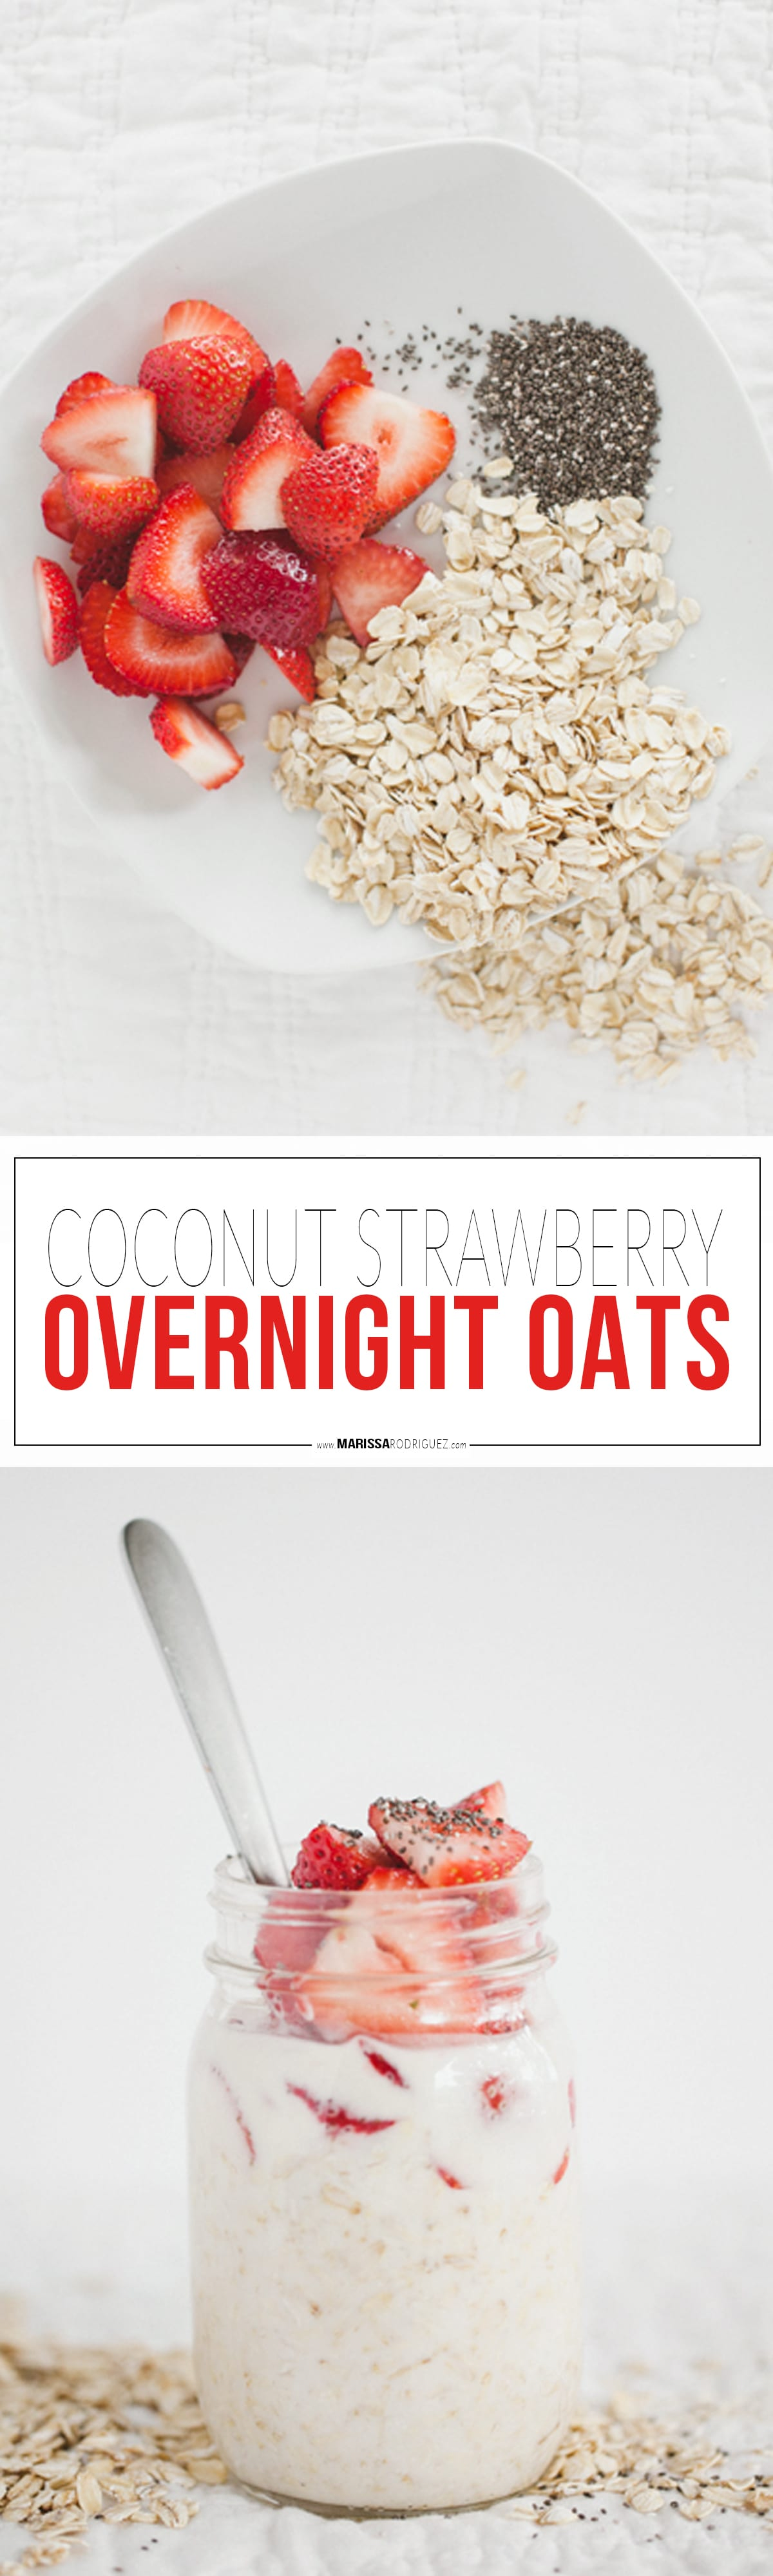 Coconut Strawberry Oatmeal